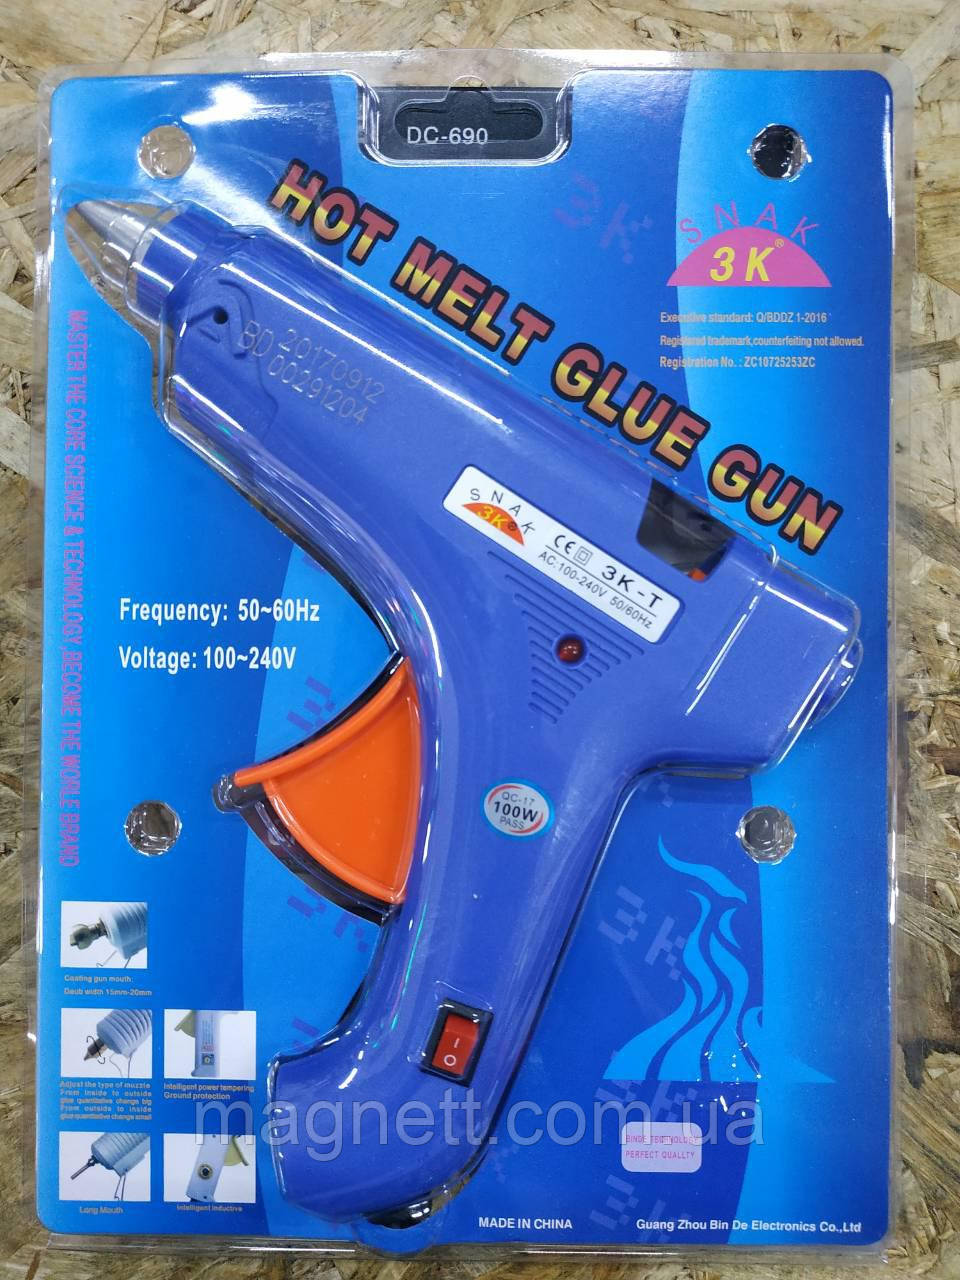 Клеевой пистолет Hot Melt Glue Gun 3K-T 80W (11 мм)